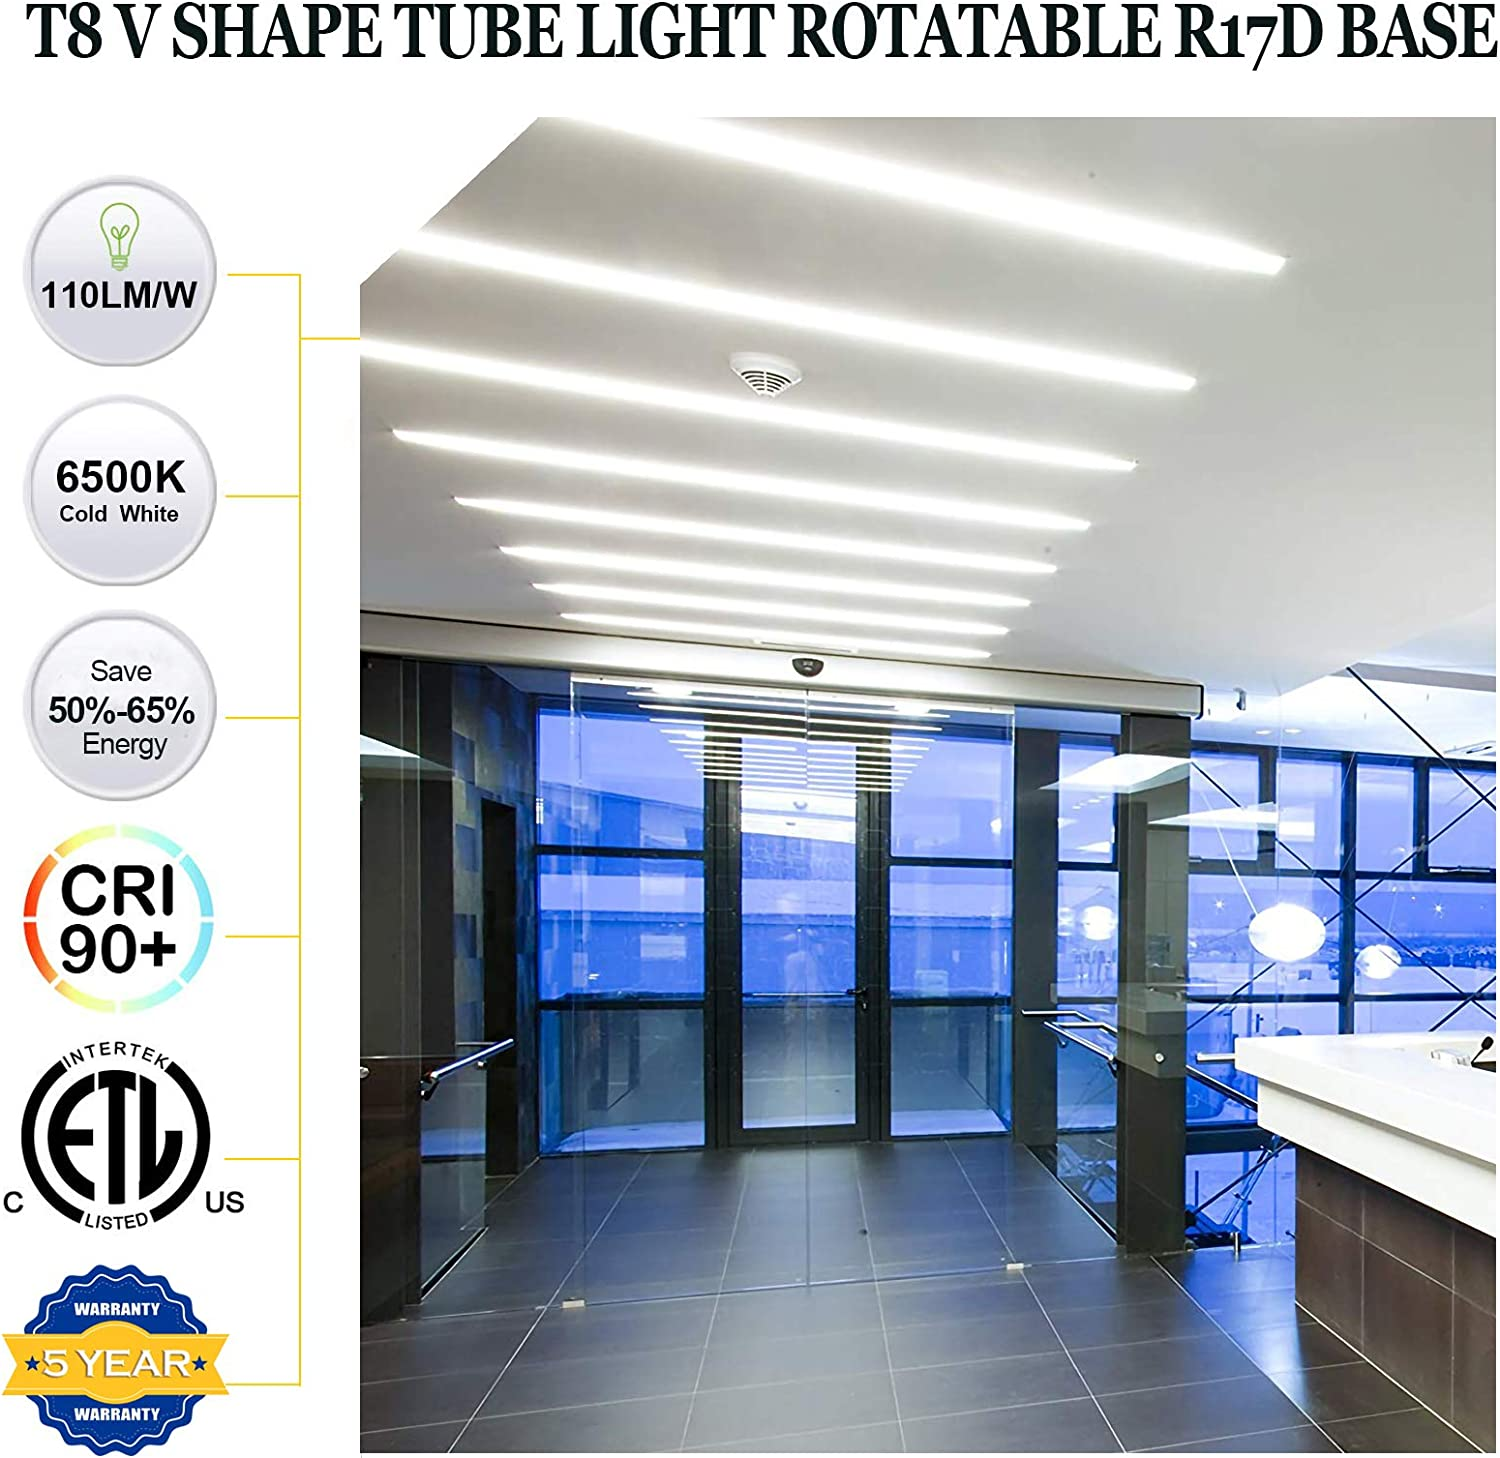 T8 LED Tube Light,360 Degree Rotatable R17D Base,8FT 60W V-Shaped Double Row Indoor Bulb Light for Warehouse,Shop,Daylight White 6500K,Clear Cover,T12 8 Foot Bulbs to Replace Fluorescent Light,15 PACK